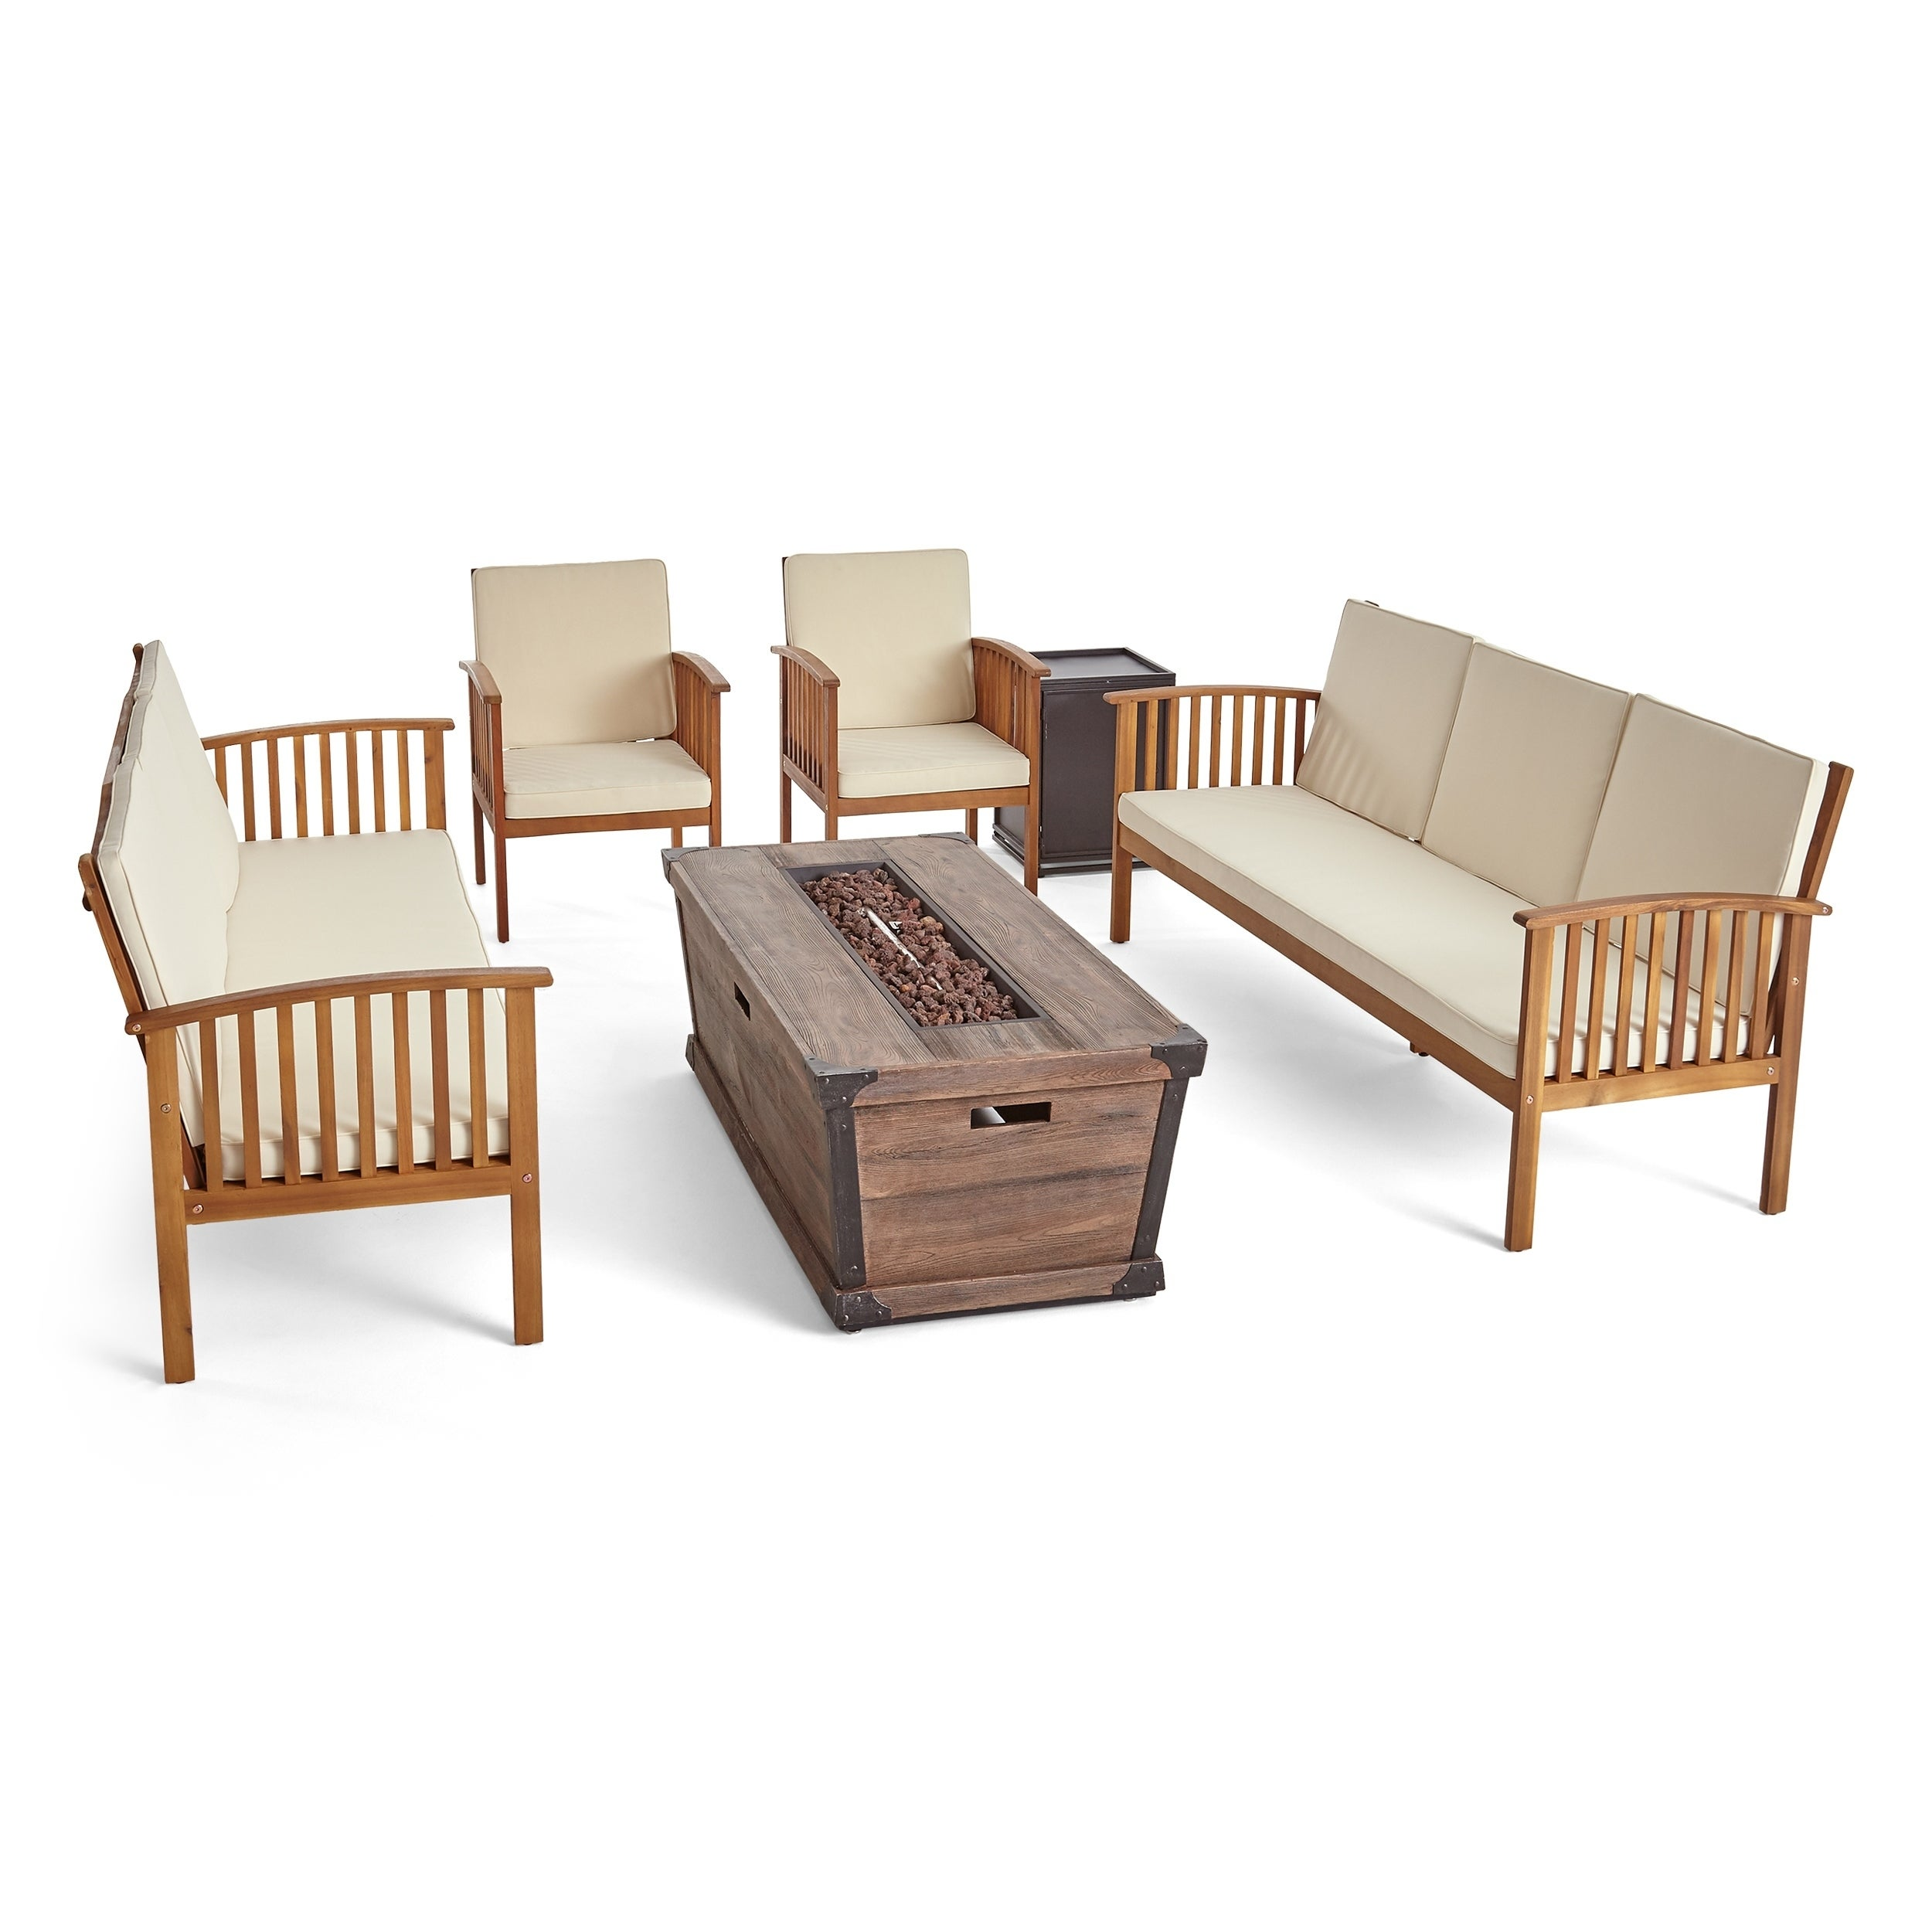 Peachy Carolina Outdoor 4 Piece Acacia Wood Conversational Sofa Set With Fire Pit By Christopher Knight Home Machost Co Dining Chair Design Ideas Machostcouk